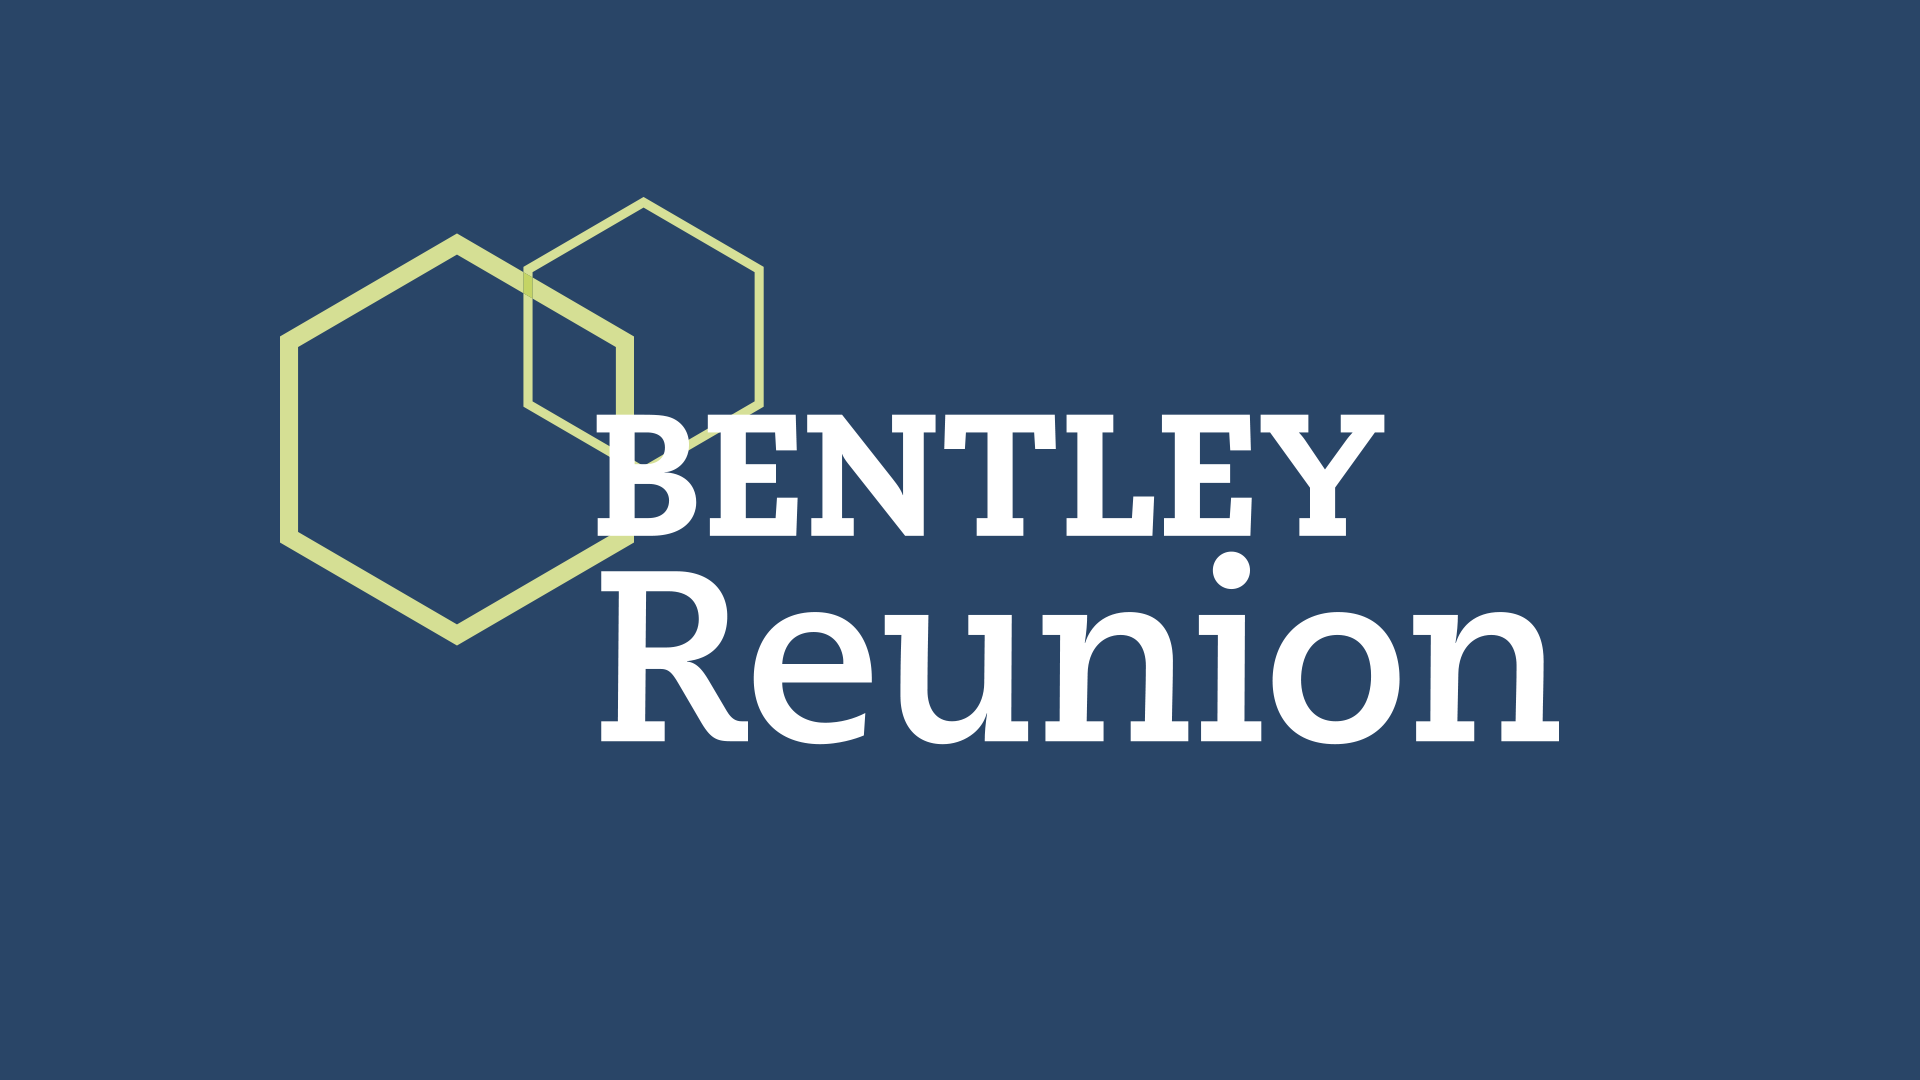 Bentley Reunion logo